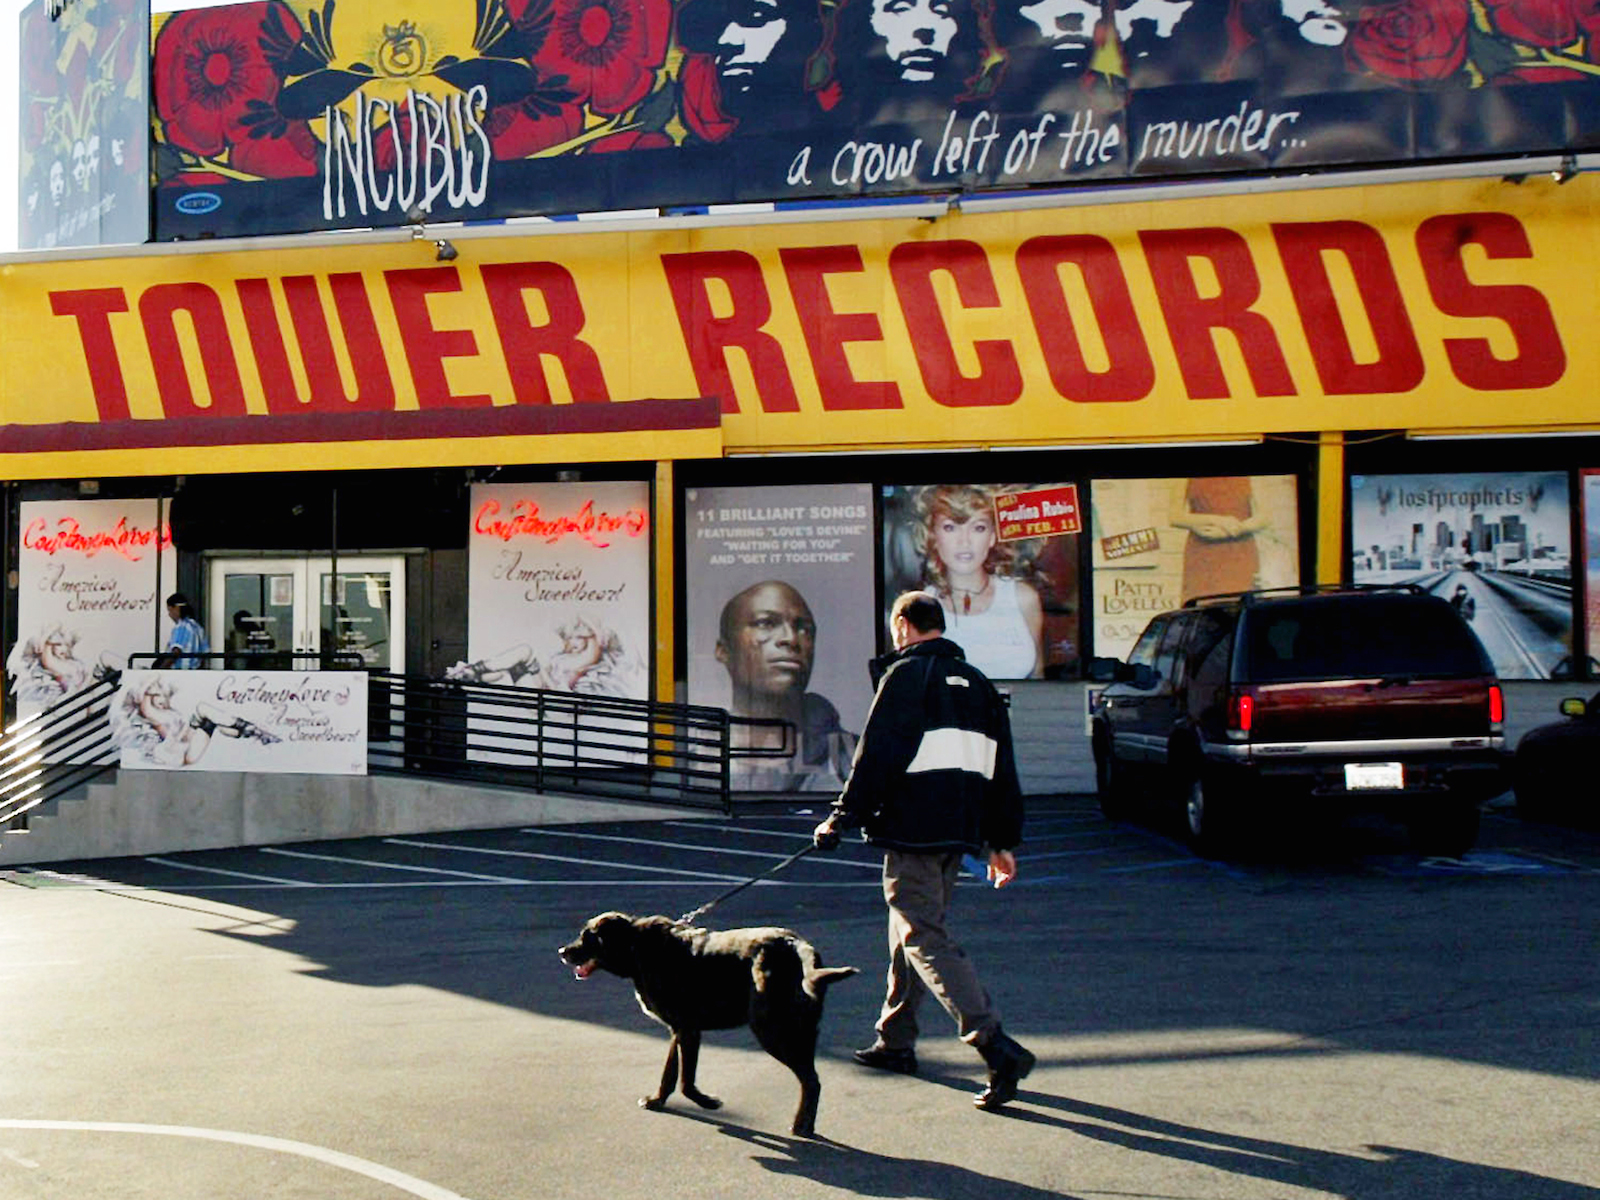 TOWER RECORDS FOREVER